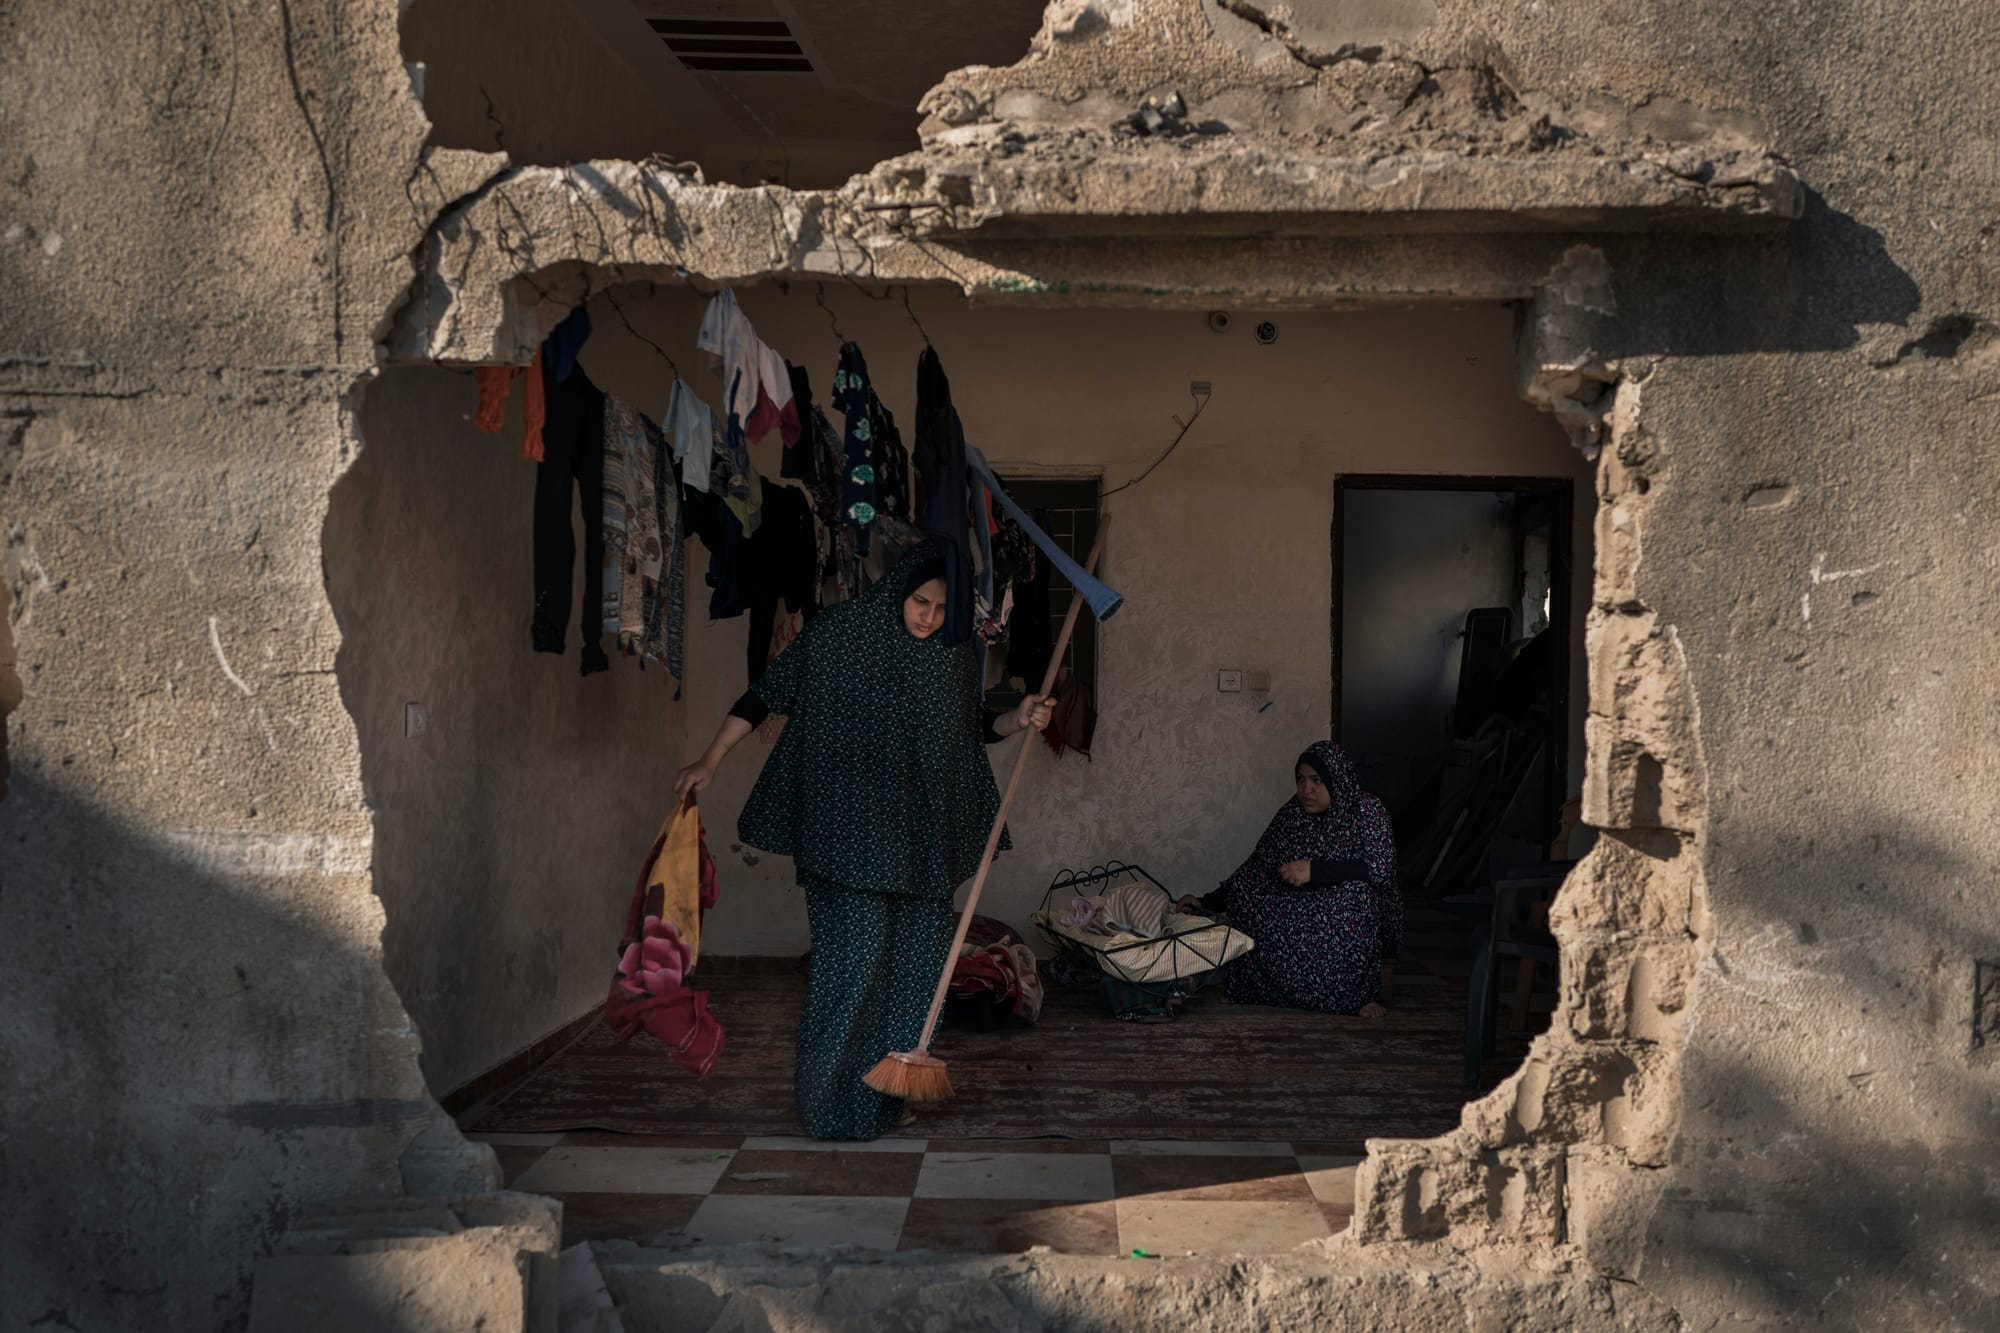 A woman cleans a room inside her home that was heavily damaged by airstrikes in Gaza. She is one of the residents trying to bring stability amid destruction. But their fears linger, knowing that sooner or later, war could erupt again.